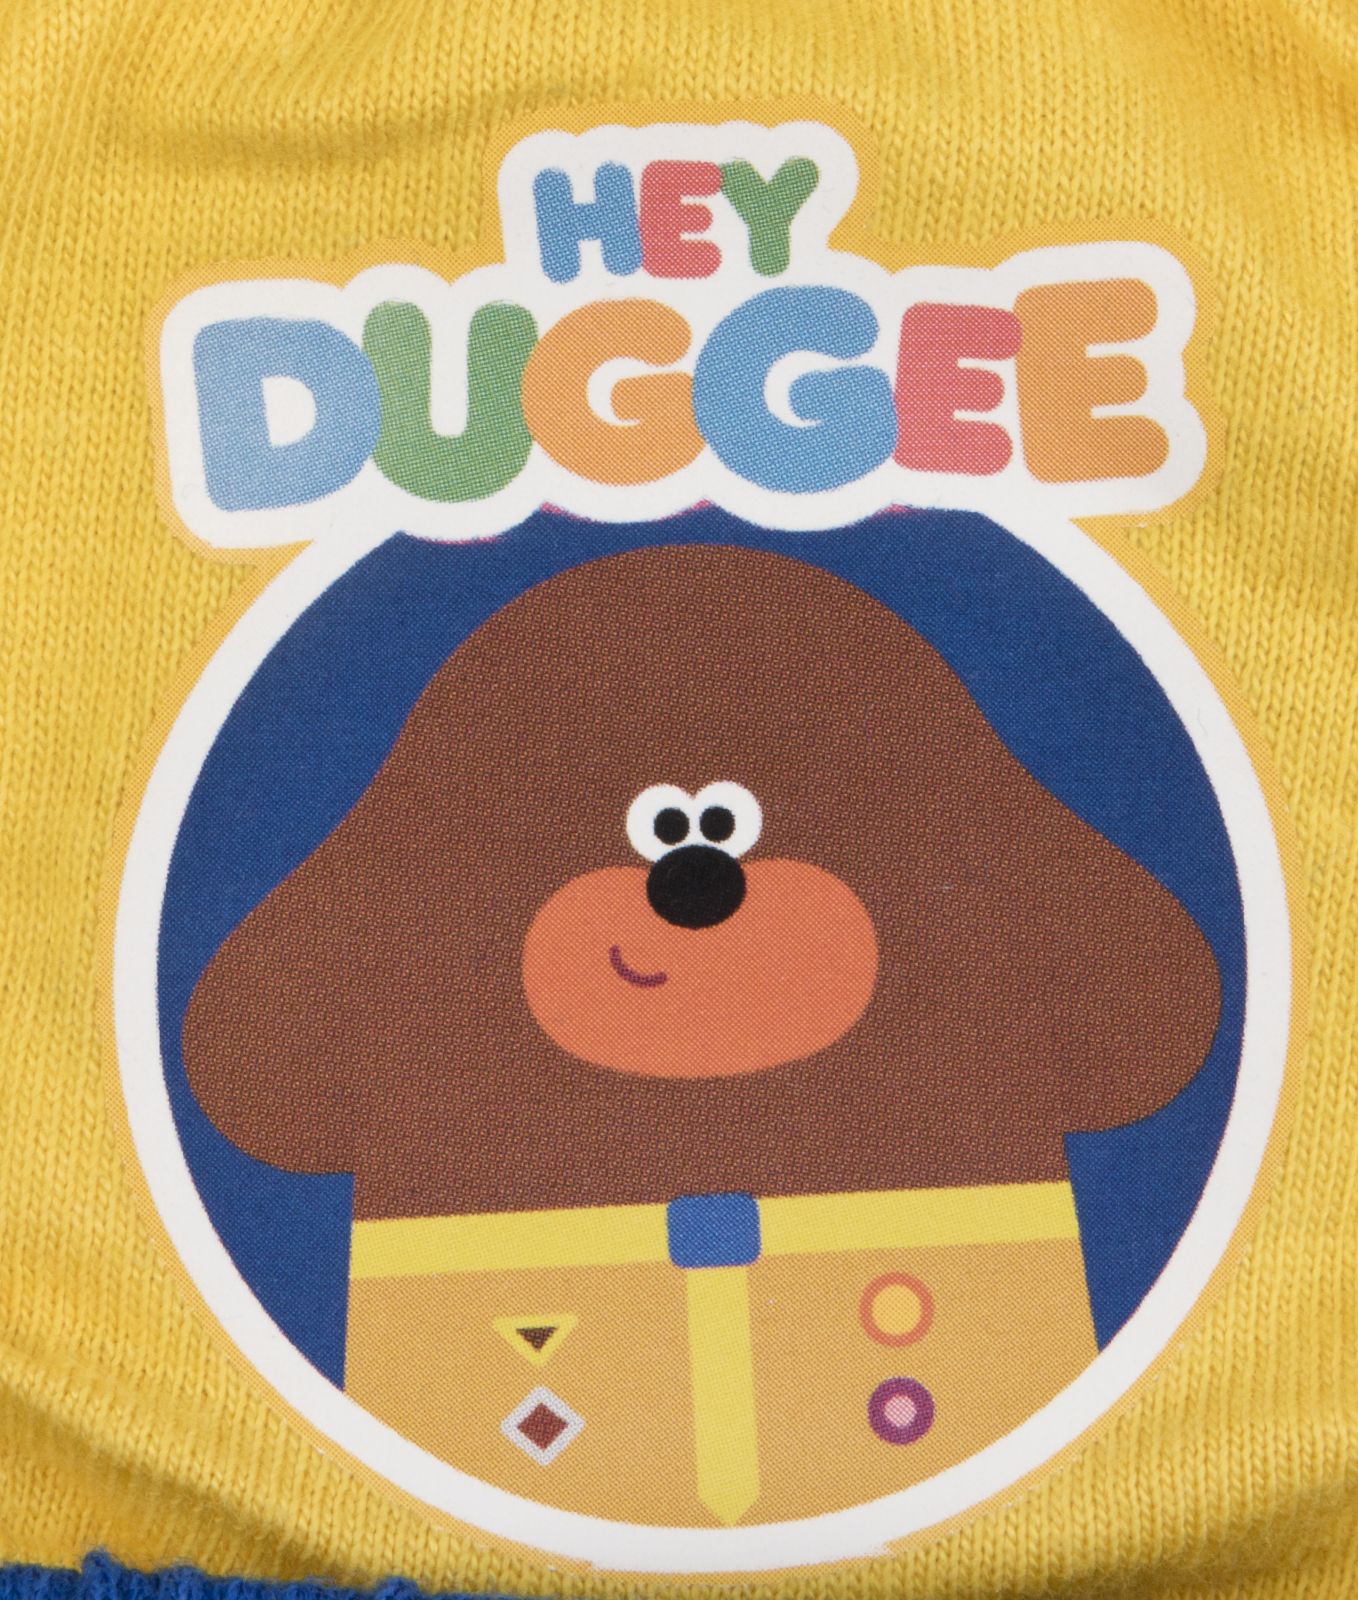 Hey Duggee Underpants Boys Underwear Multipack First Training Pants 3 Pack Size